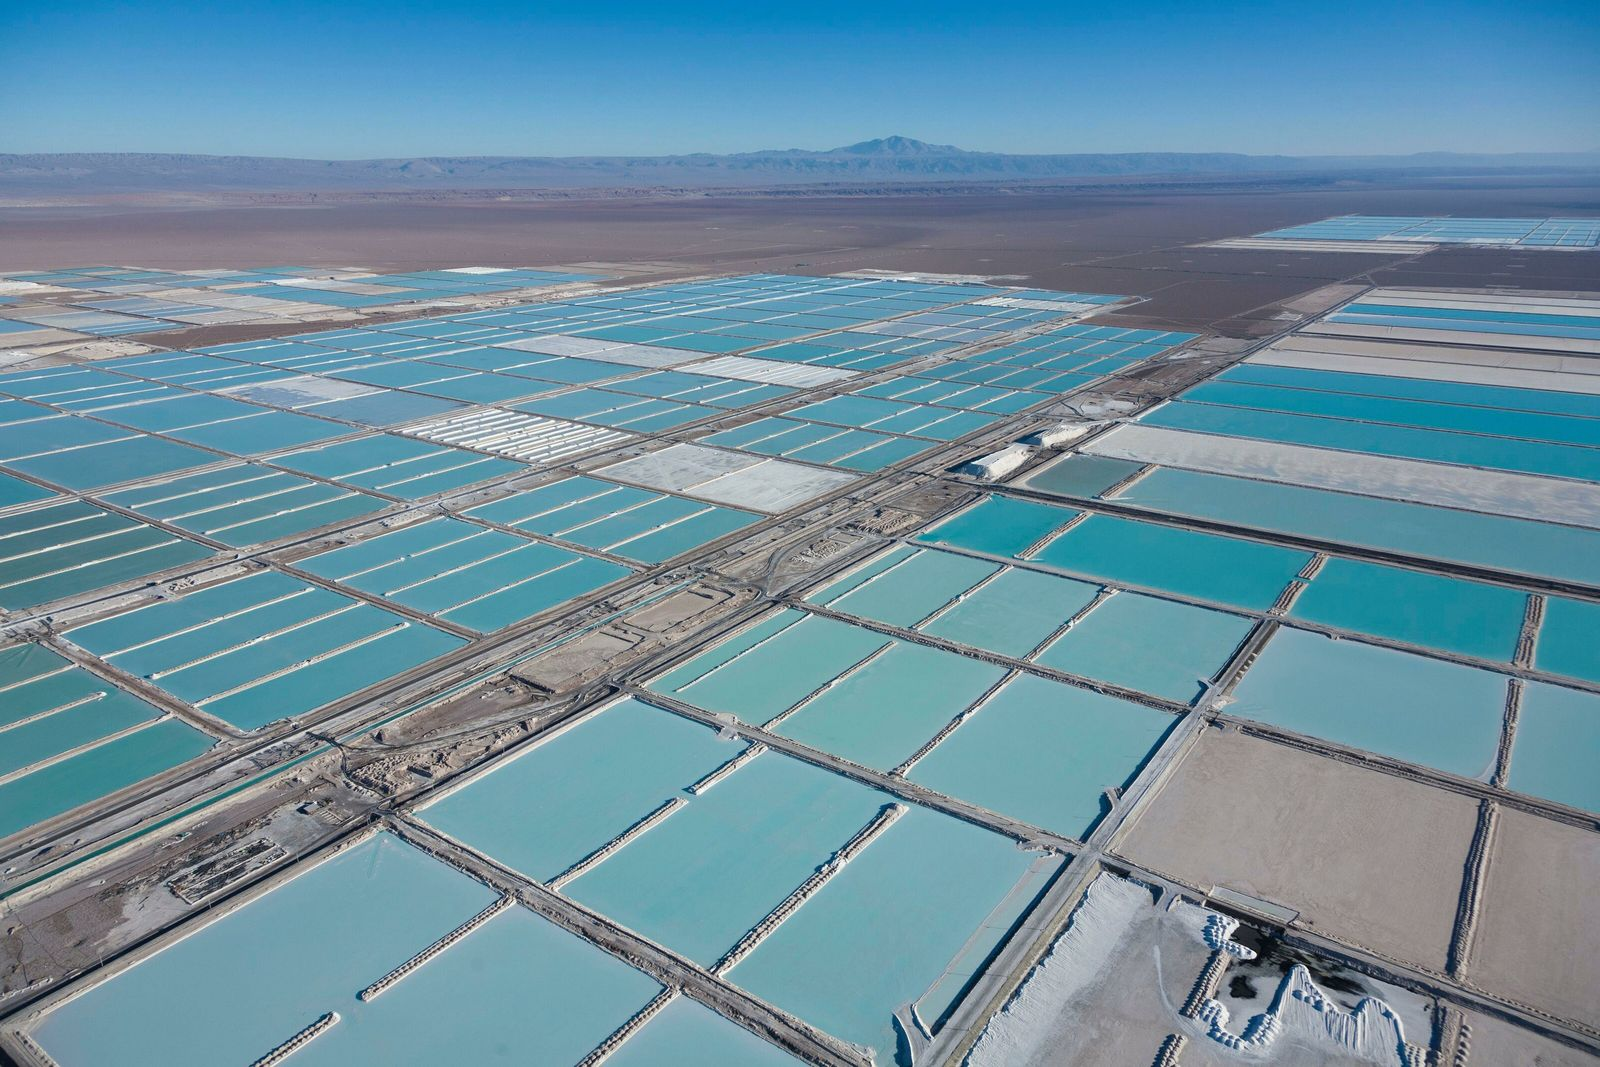 The Atacama Salar, in South America, is home to the world's largest lithium deposit. These are the evaporation ...